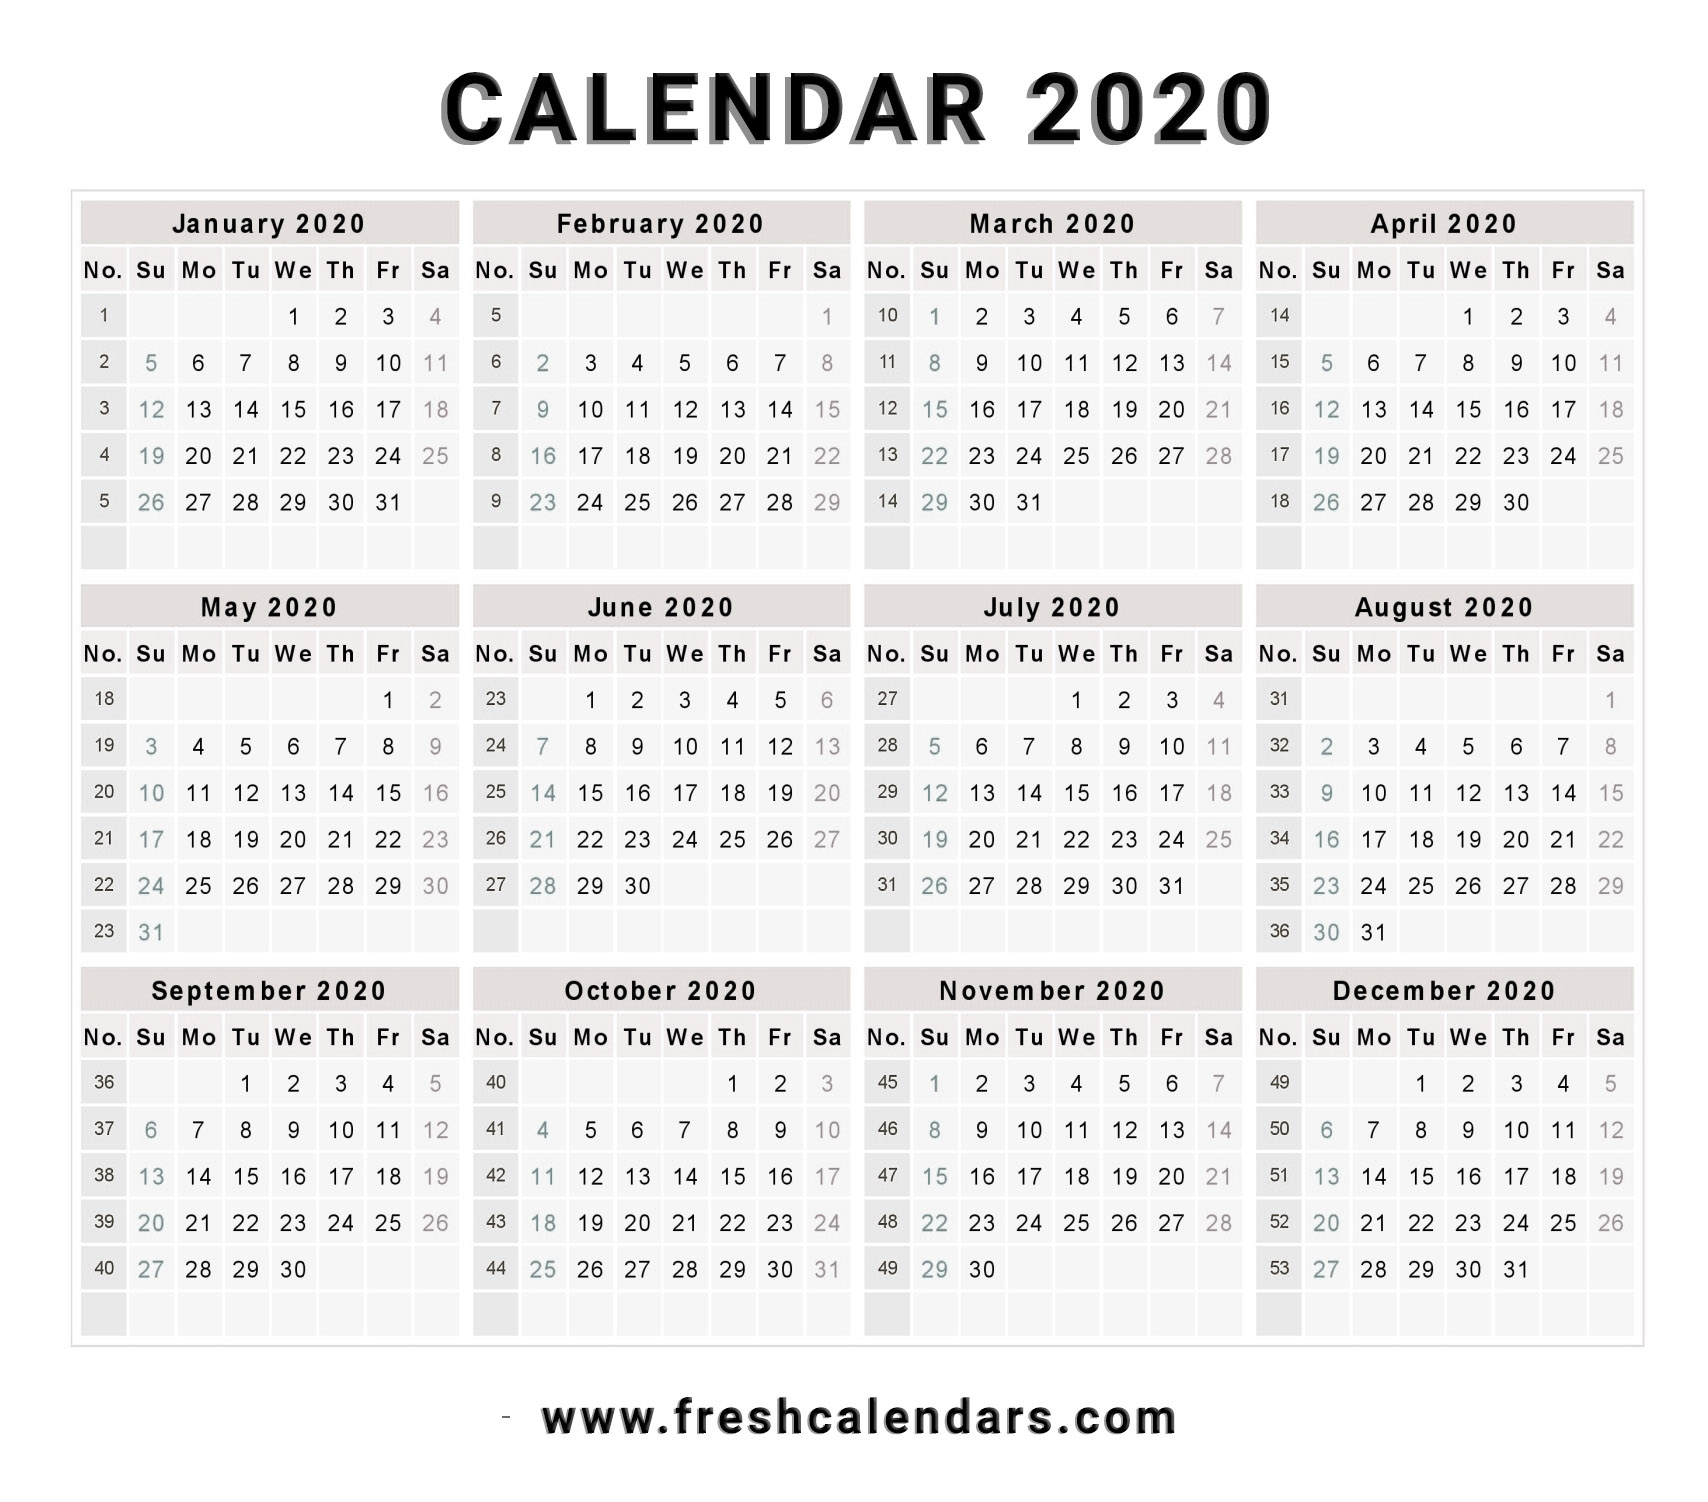 2020 Calendar within Printable Calendar 2020 That You Can Type In